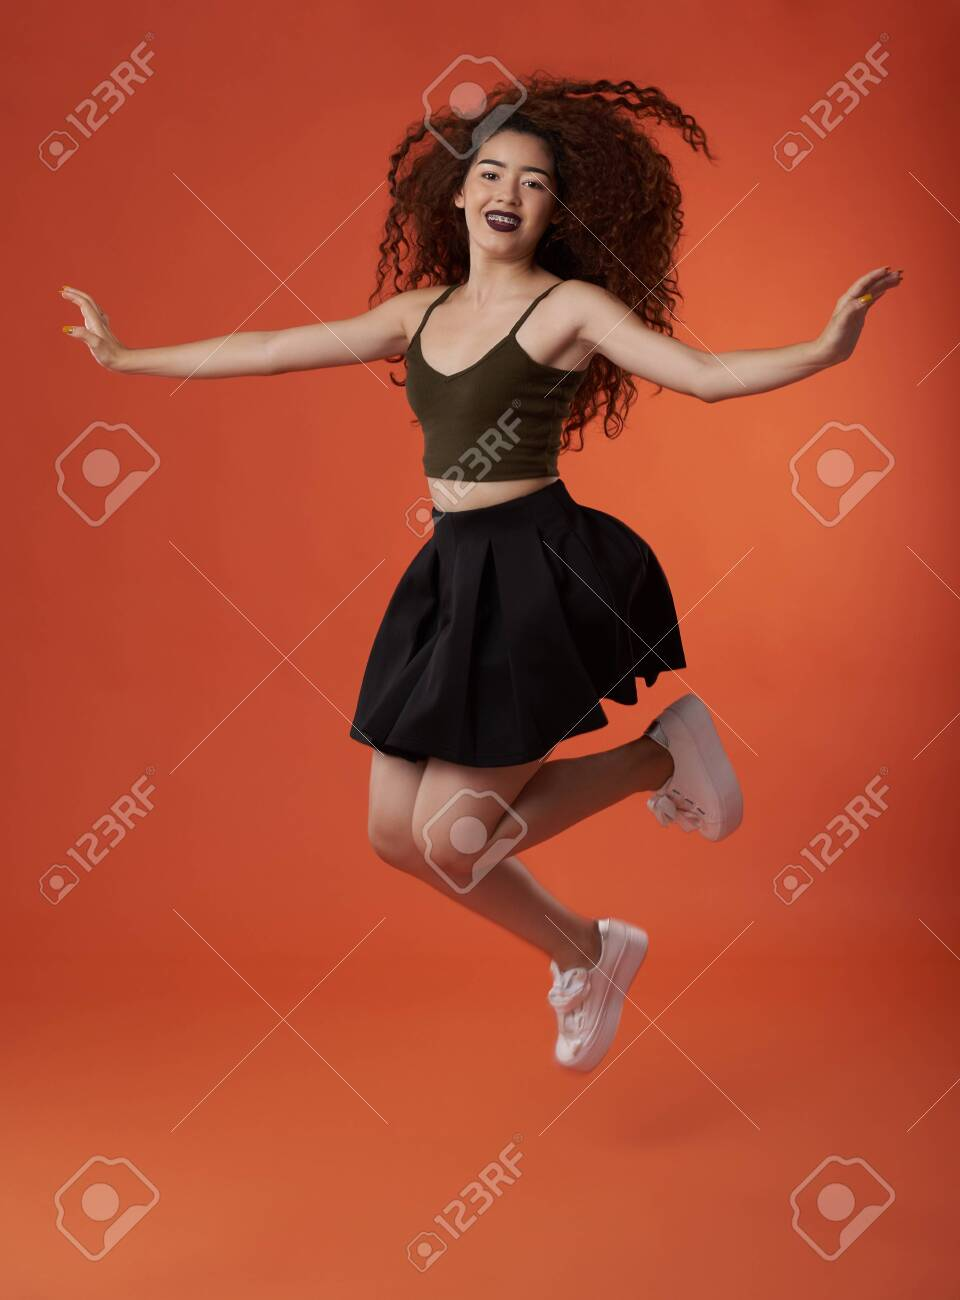 Jumping happy young brunette woman with curly hair - 128284889